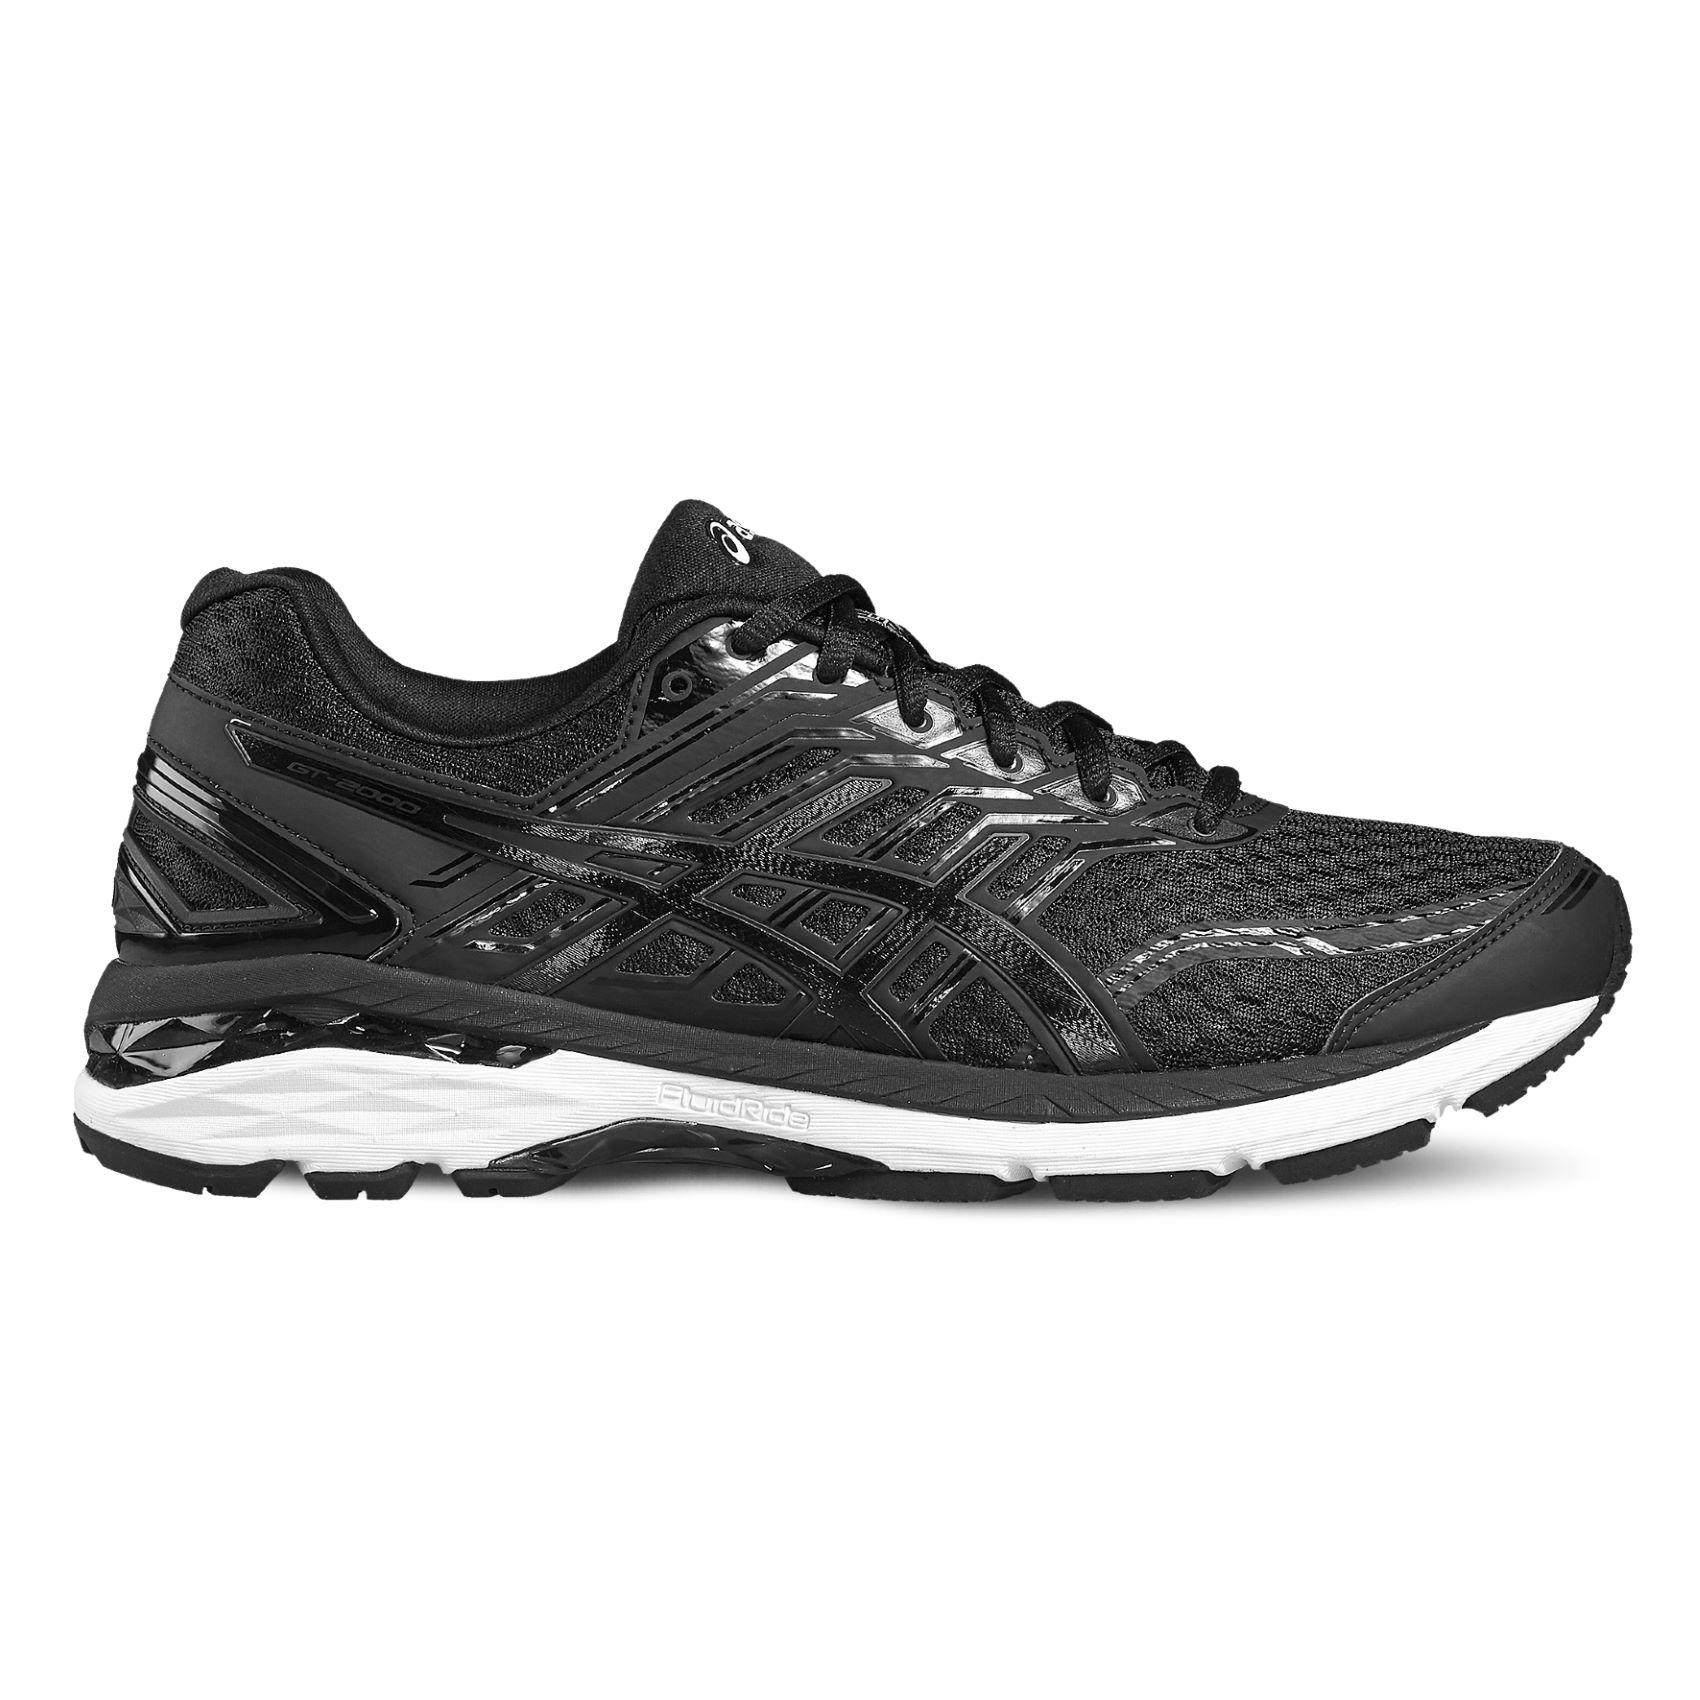 Adidas running shoes for women